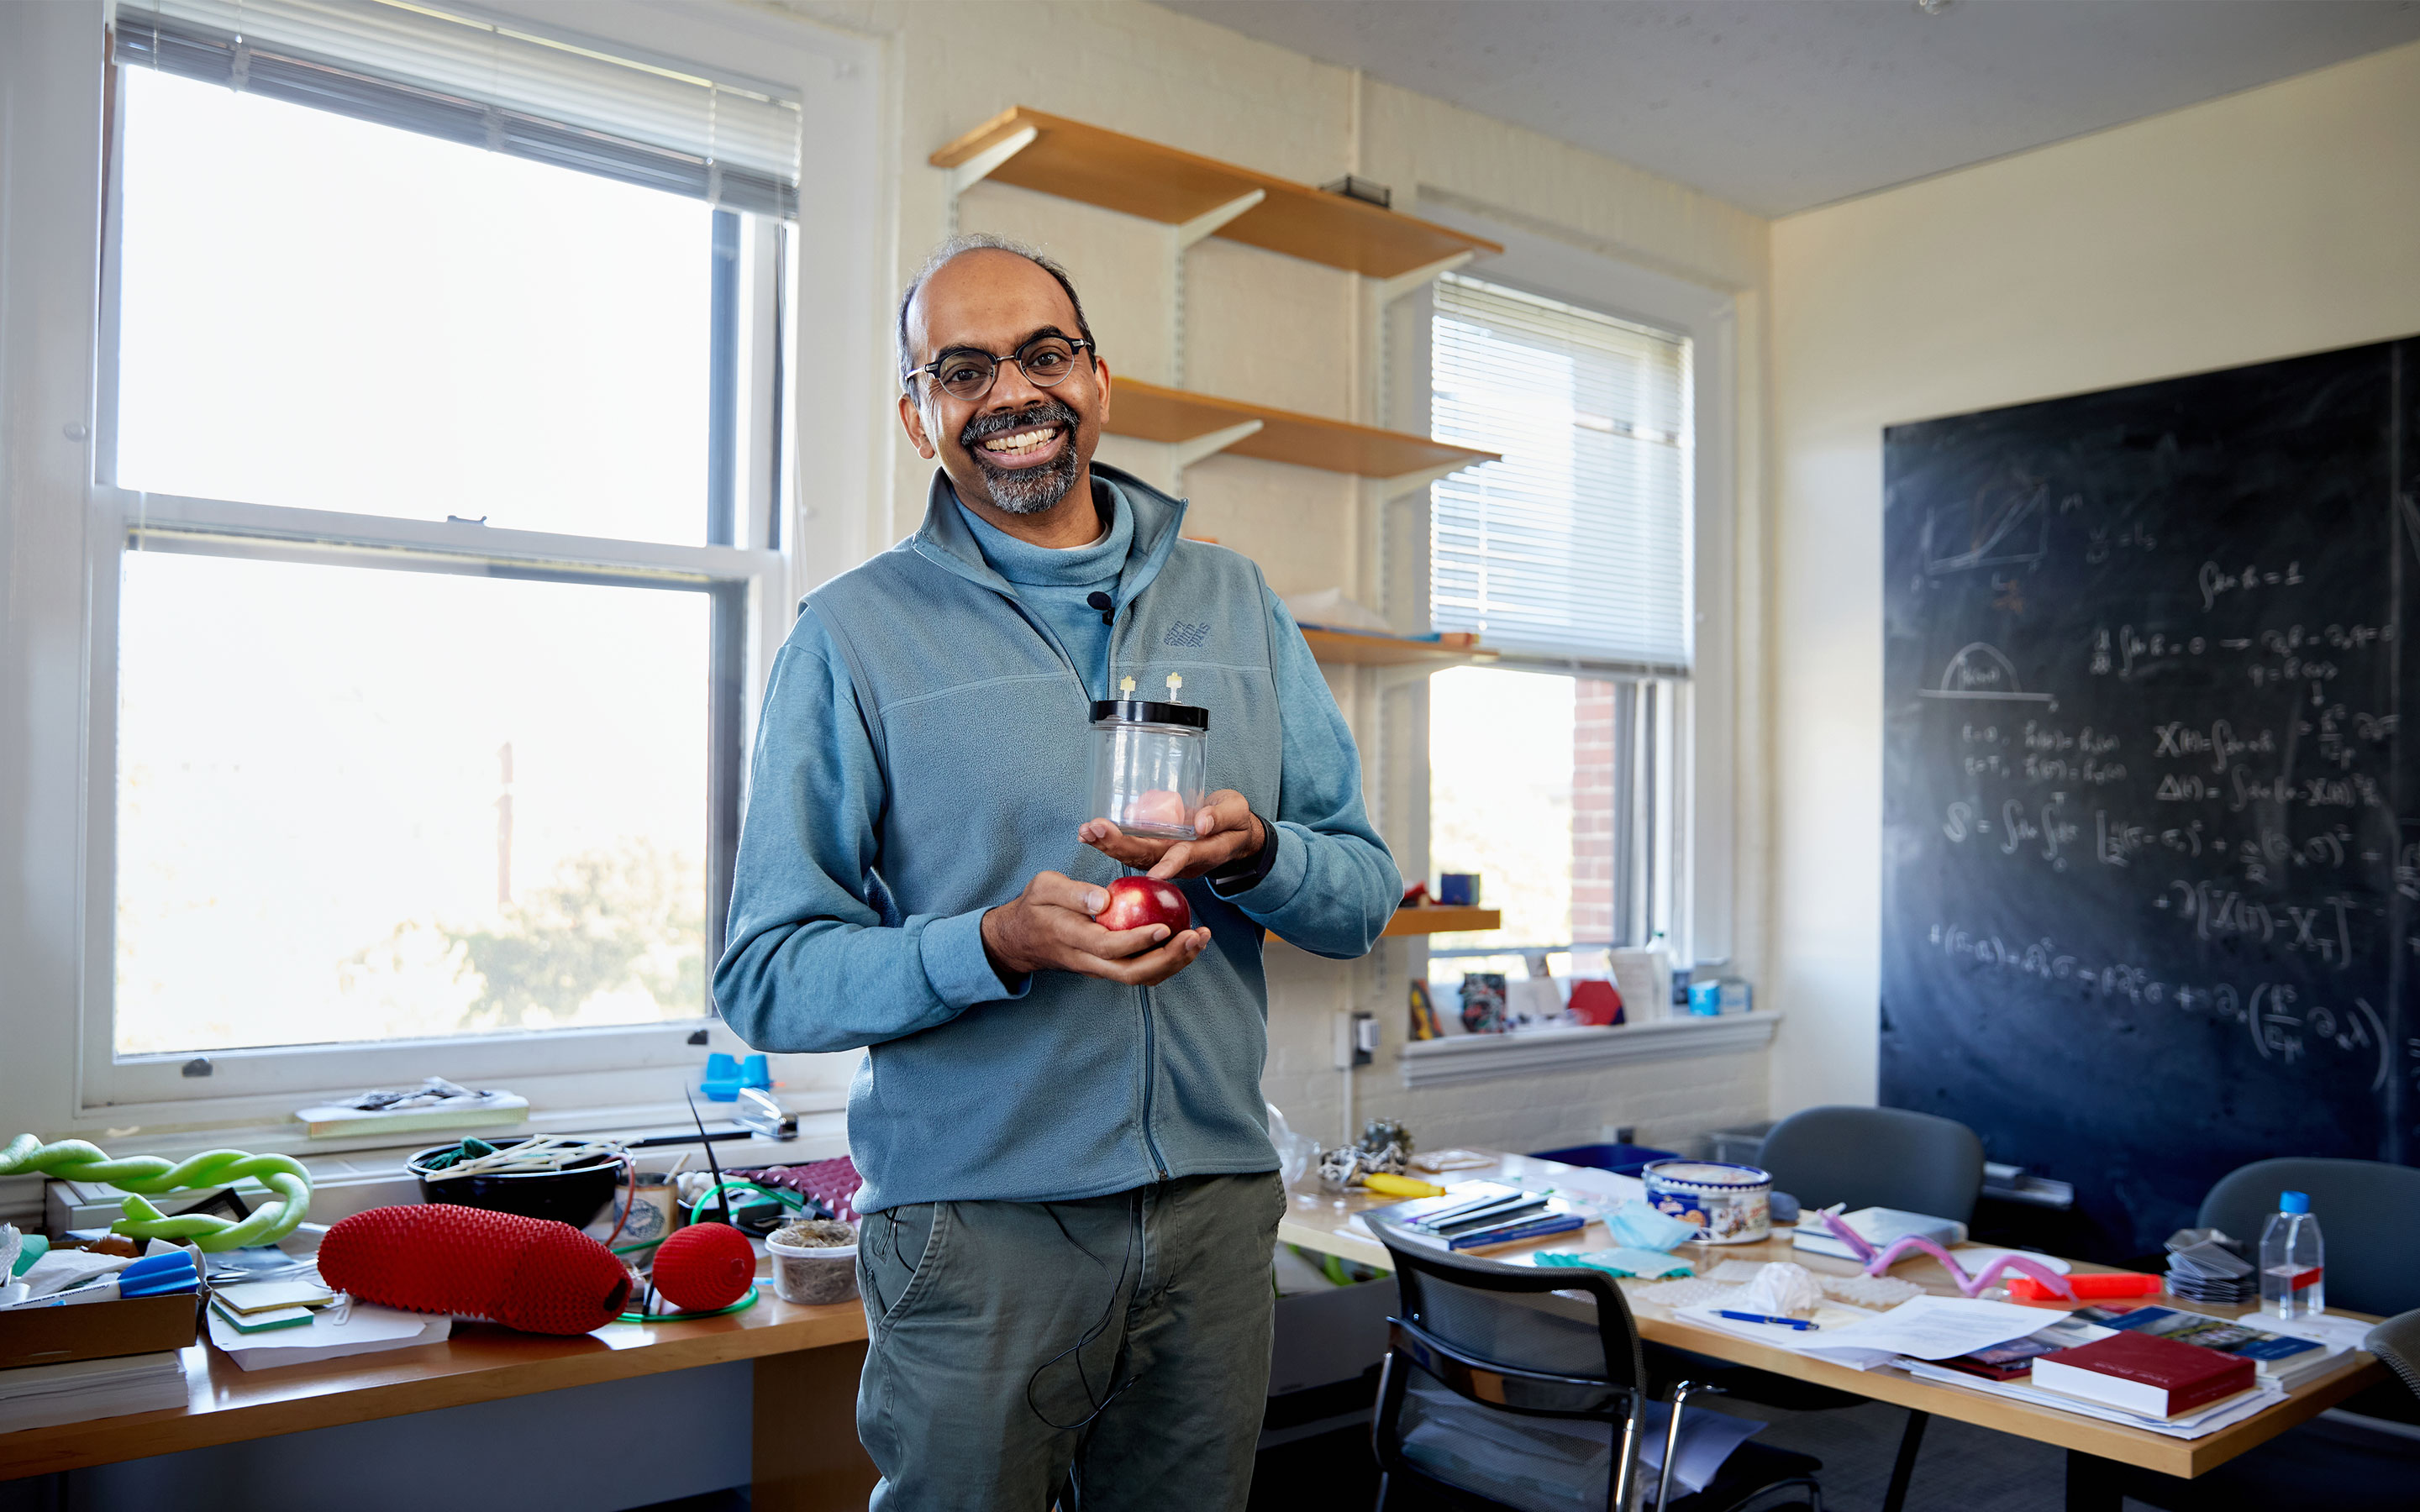 Harvard professor L. Mahadevan stands in a slightly cluttered office, holding an apple and a jar containing a miniature brain